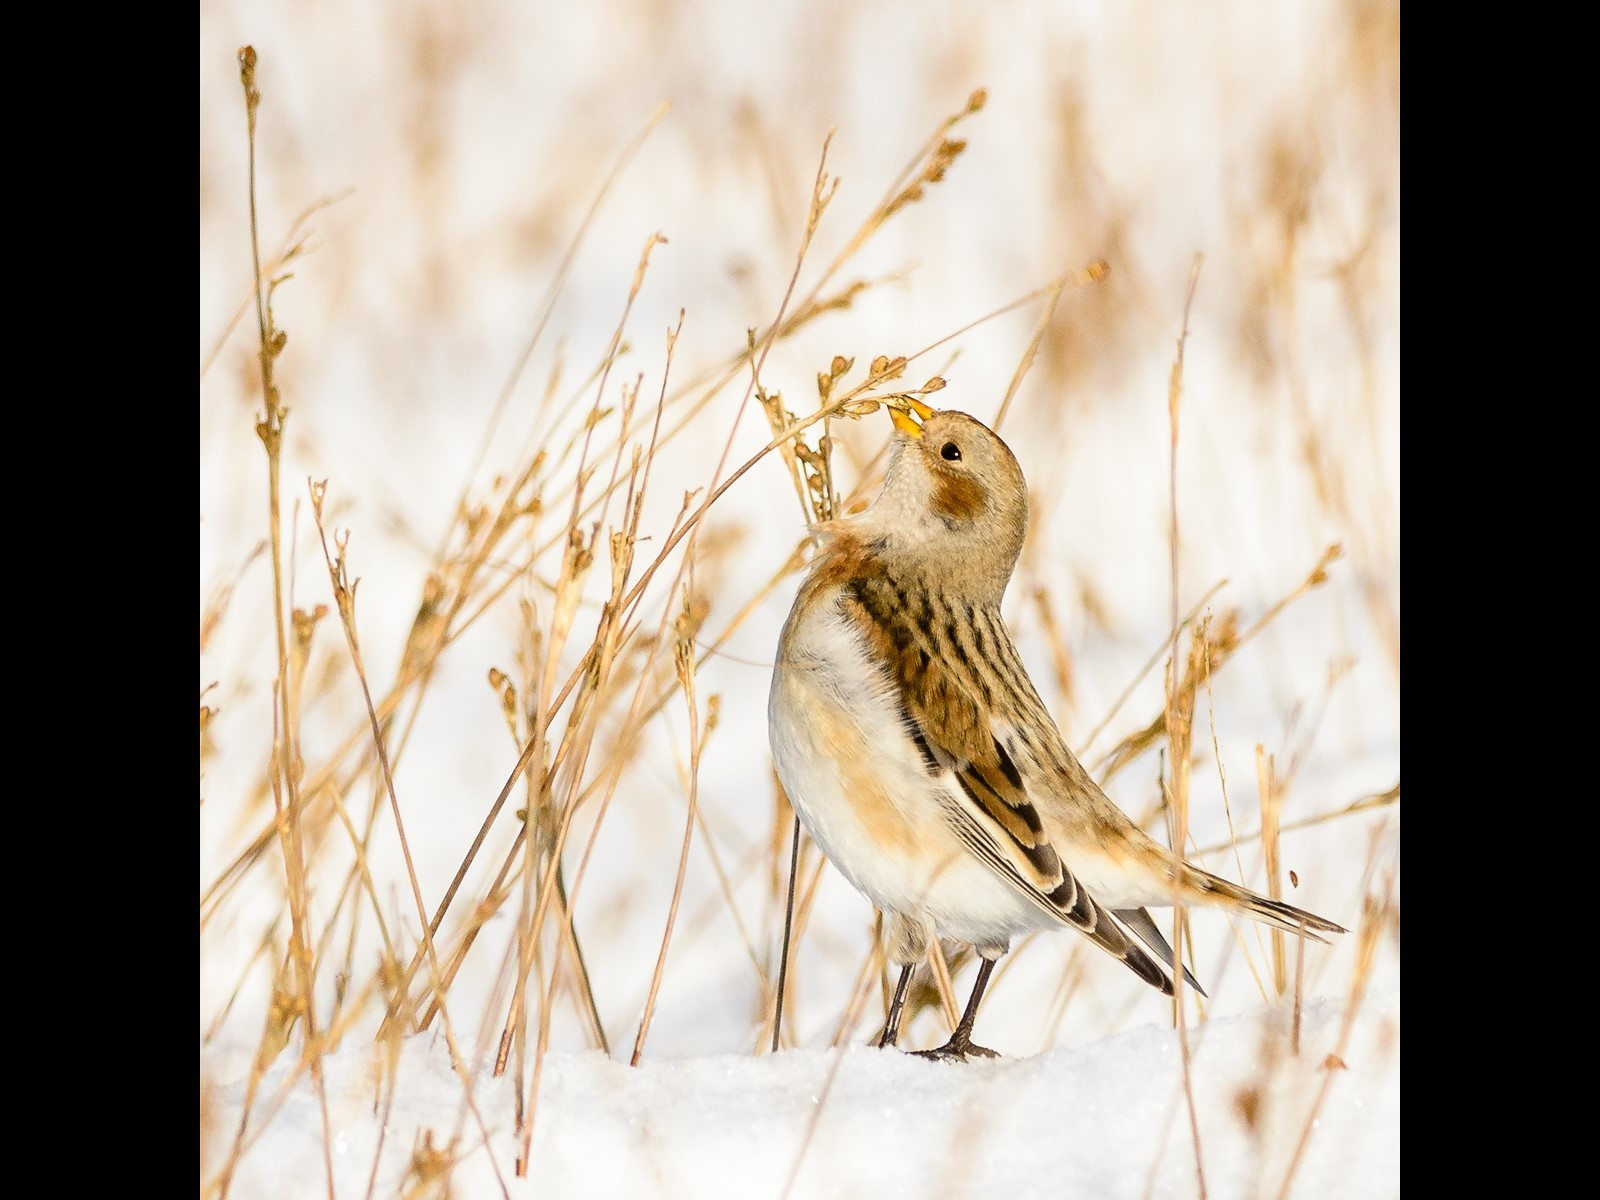 Snow Bunting Picking Seeds on Pendle Hill